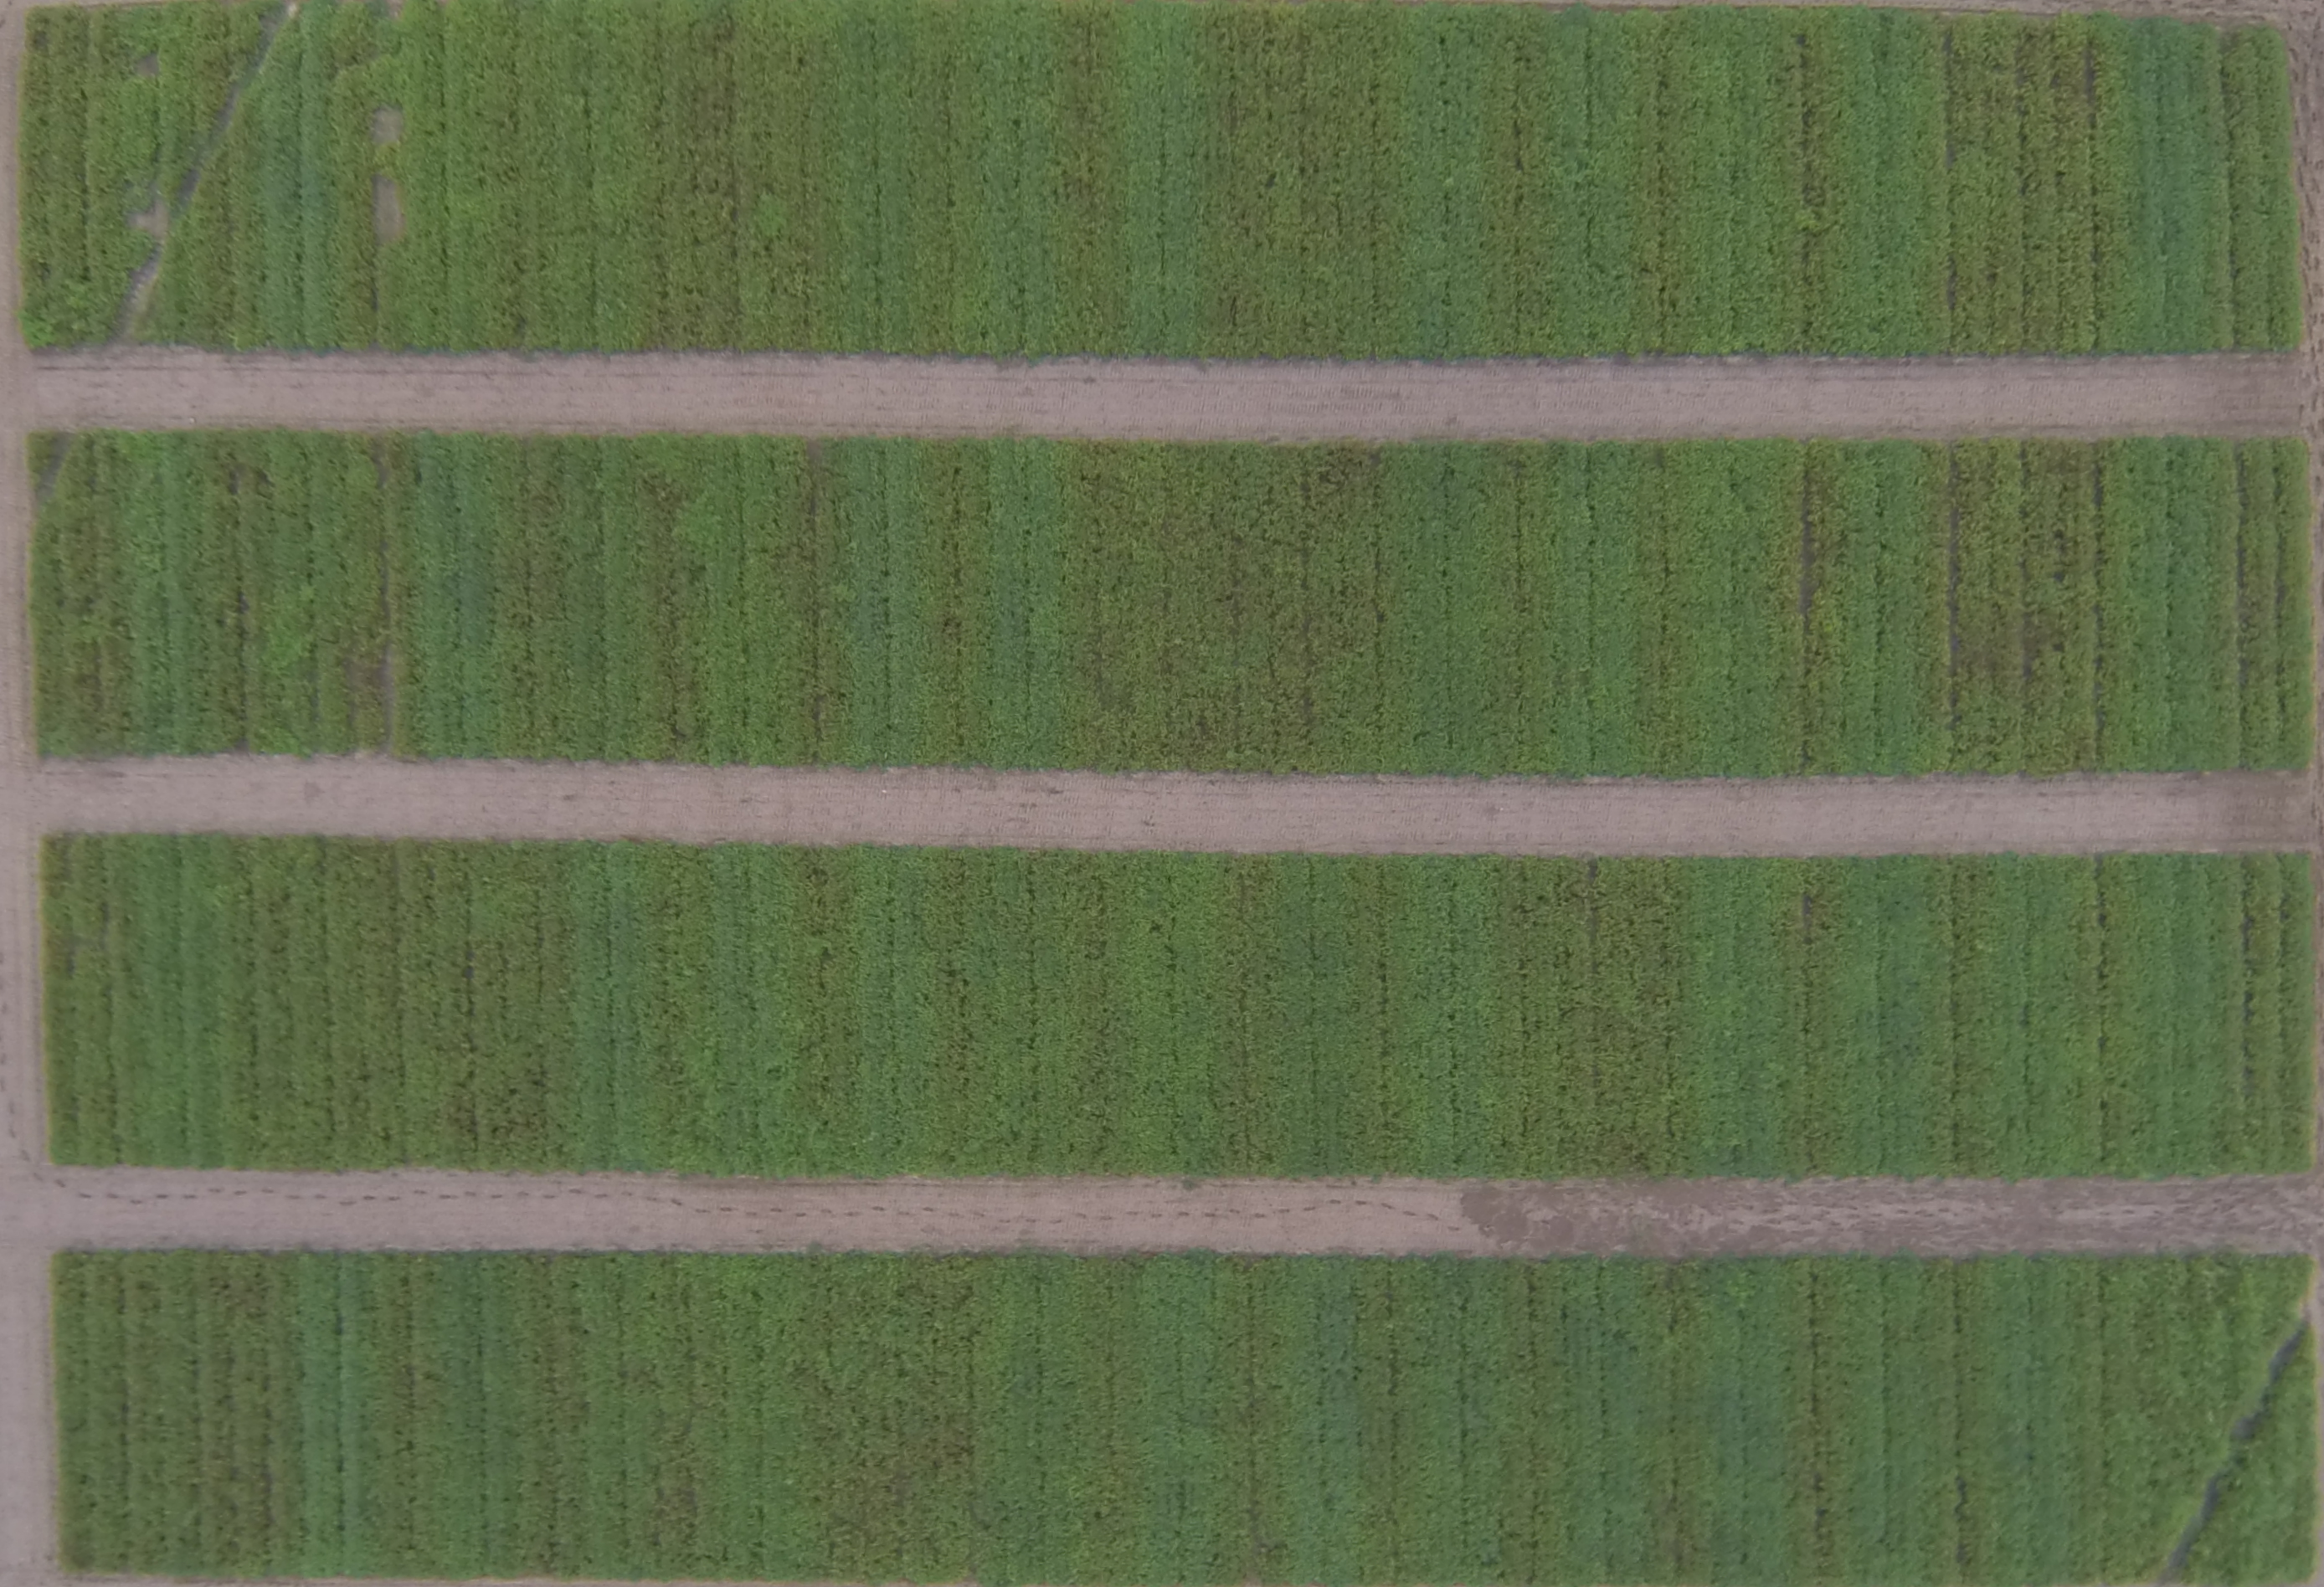 Figure 1. An aerial image of 2014 peanut leaf spot fungicide trial from the University of Florida Plant Science Research and Education Unit in Citra, FL on 9/25/14.